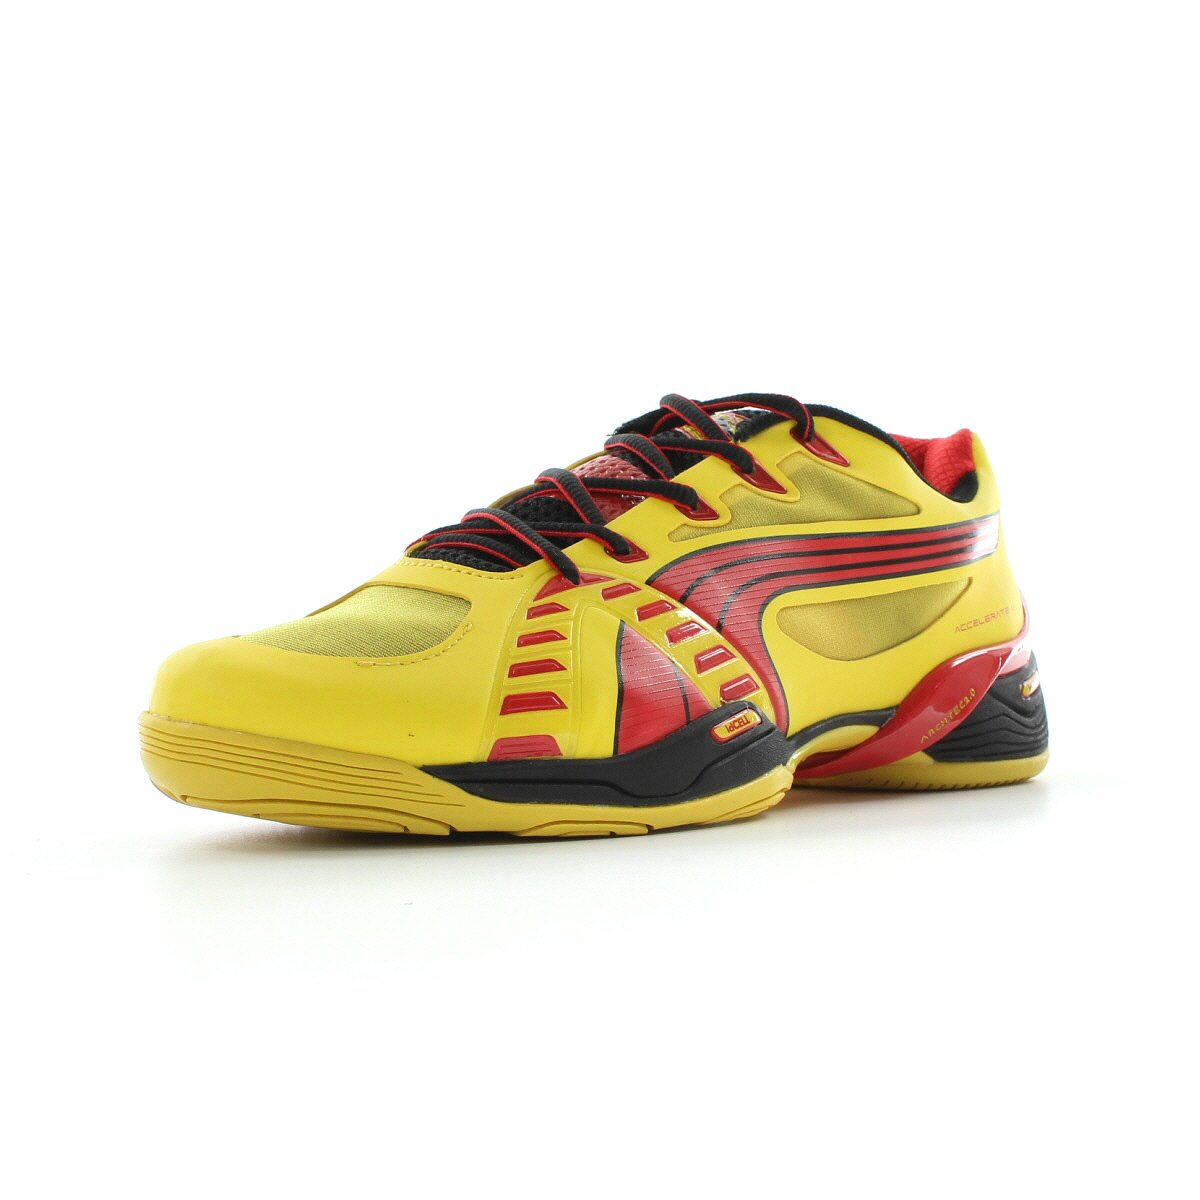 chaussures handball puma homme accelerate 6 taille jaune synth tique lacets. Black Bedroom Furniture Sets. Home Design Ideas